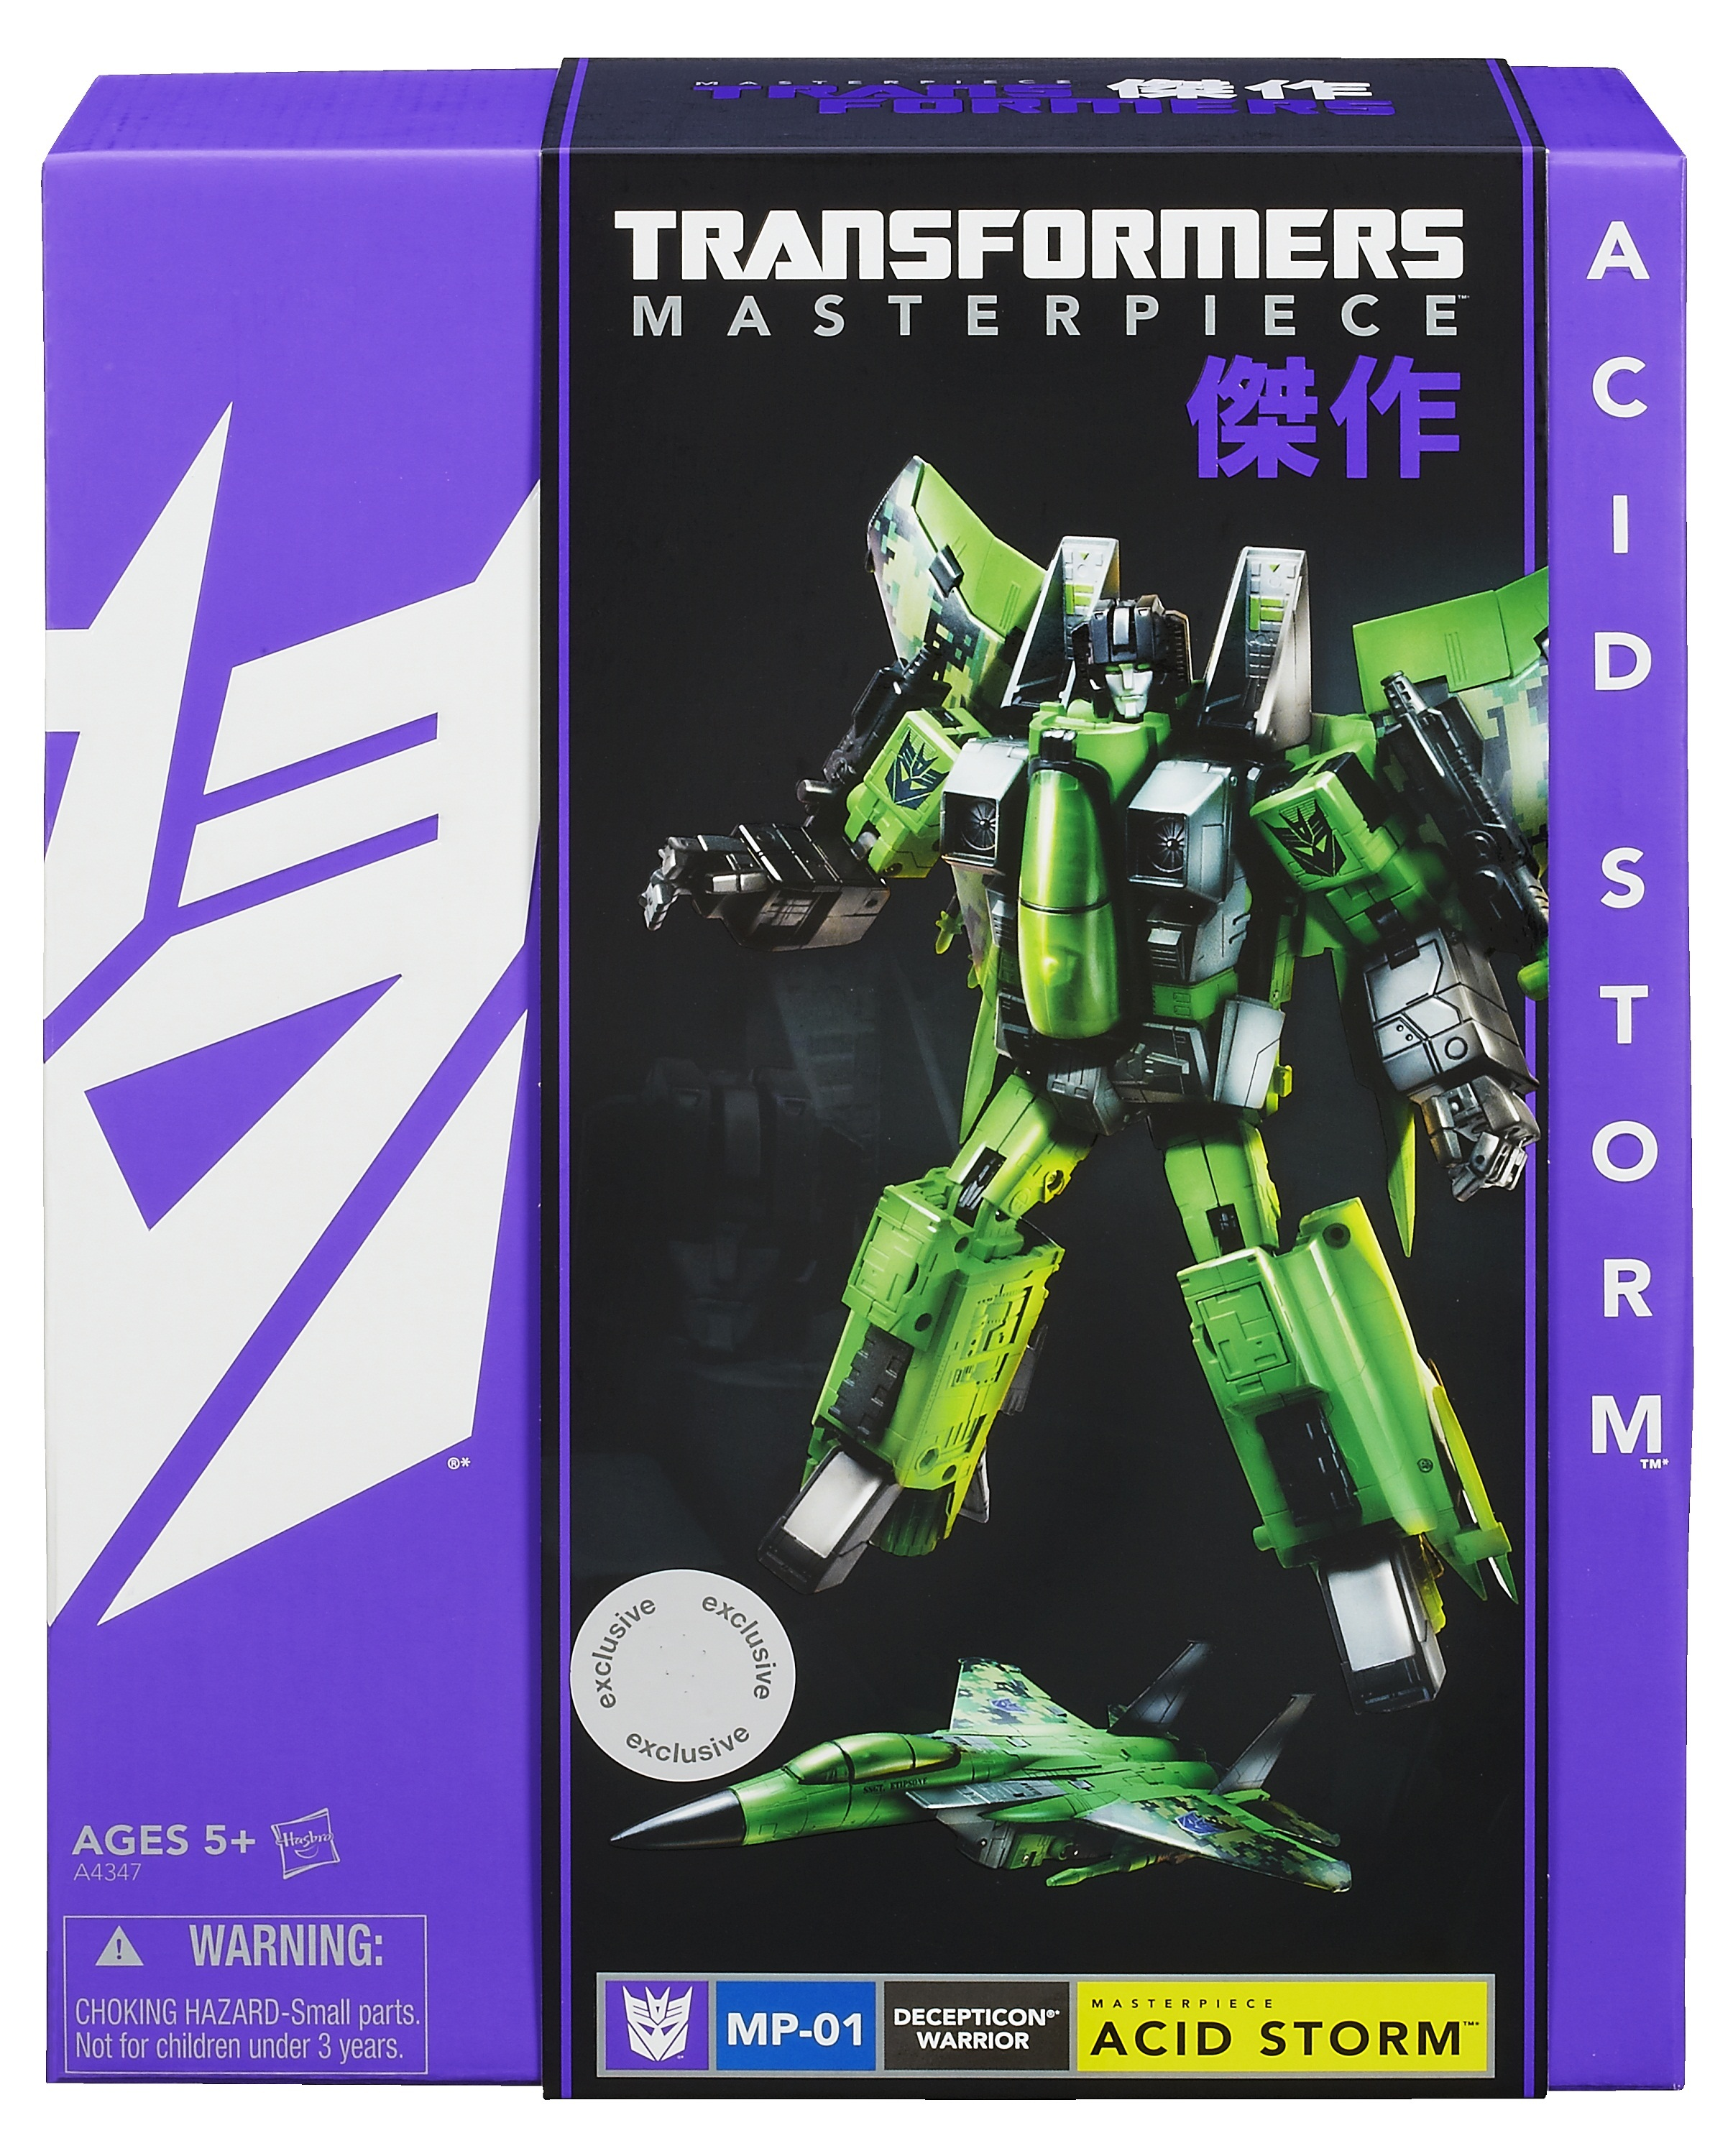 Transformers Masterpiece Acid Storm 1